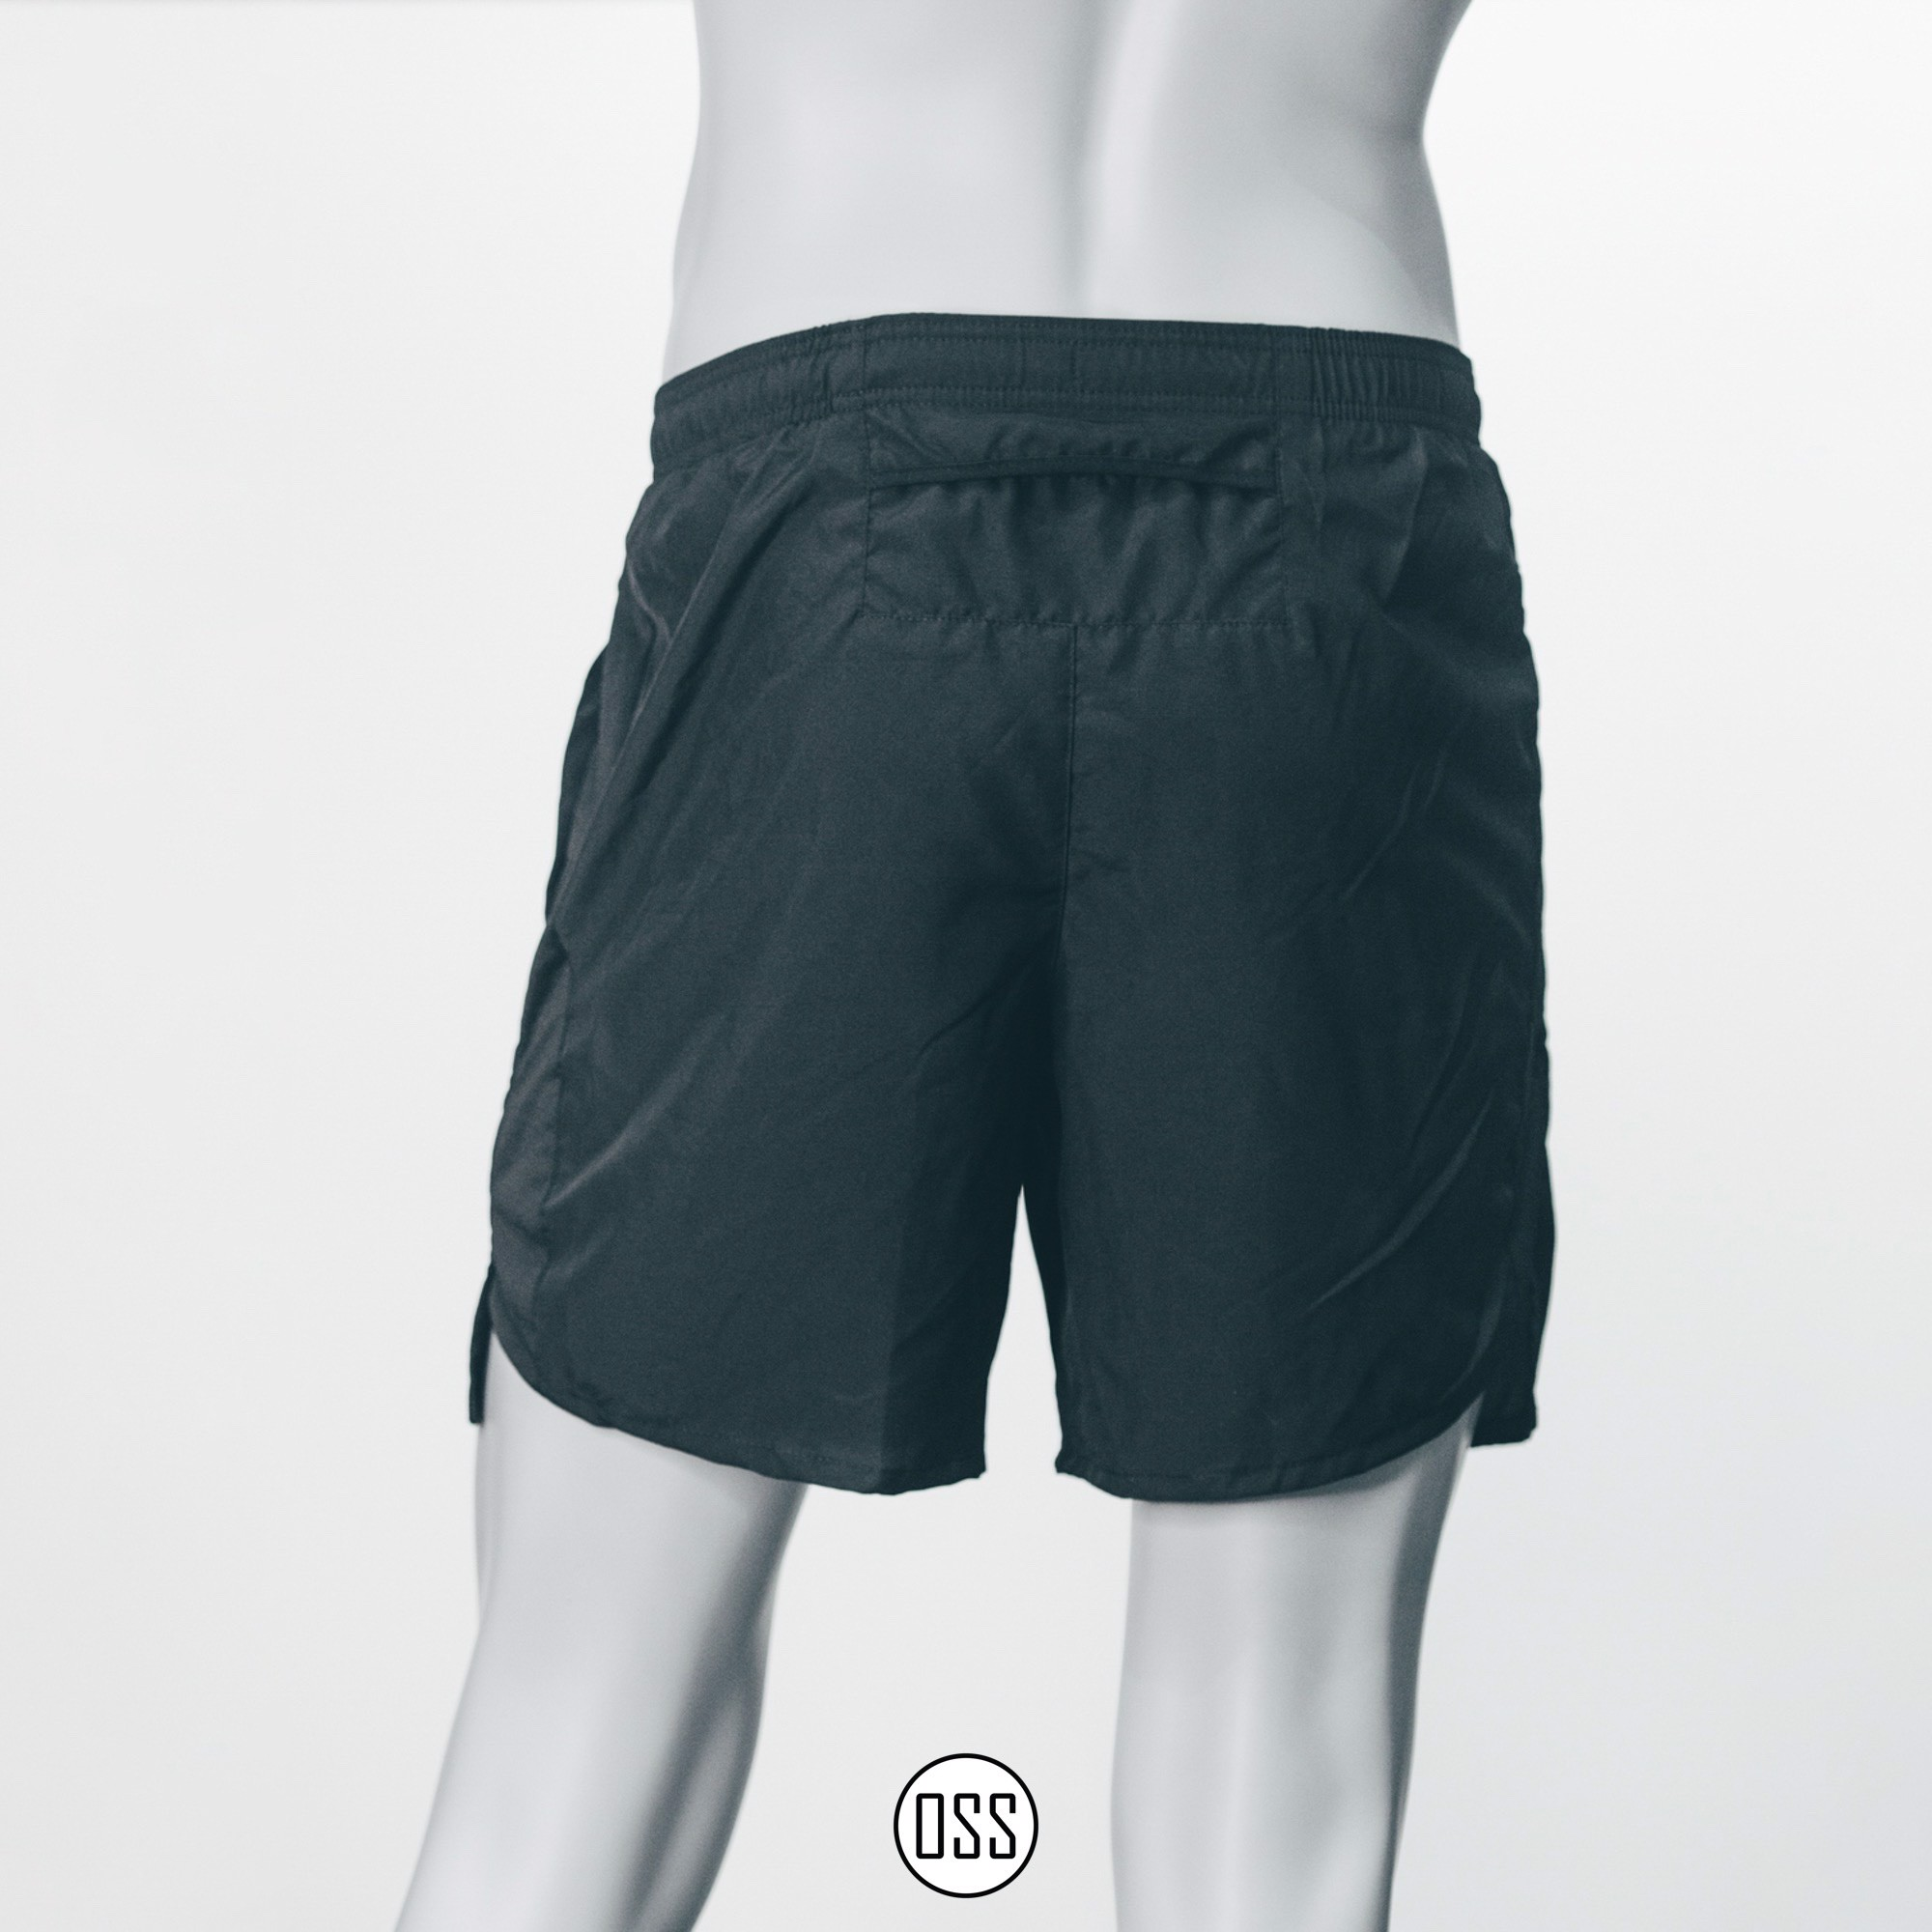 Nike Running Shorts - Black